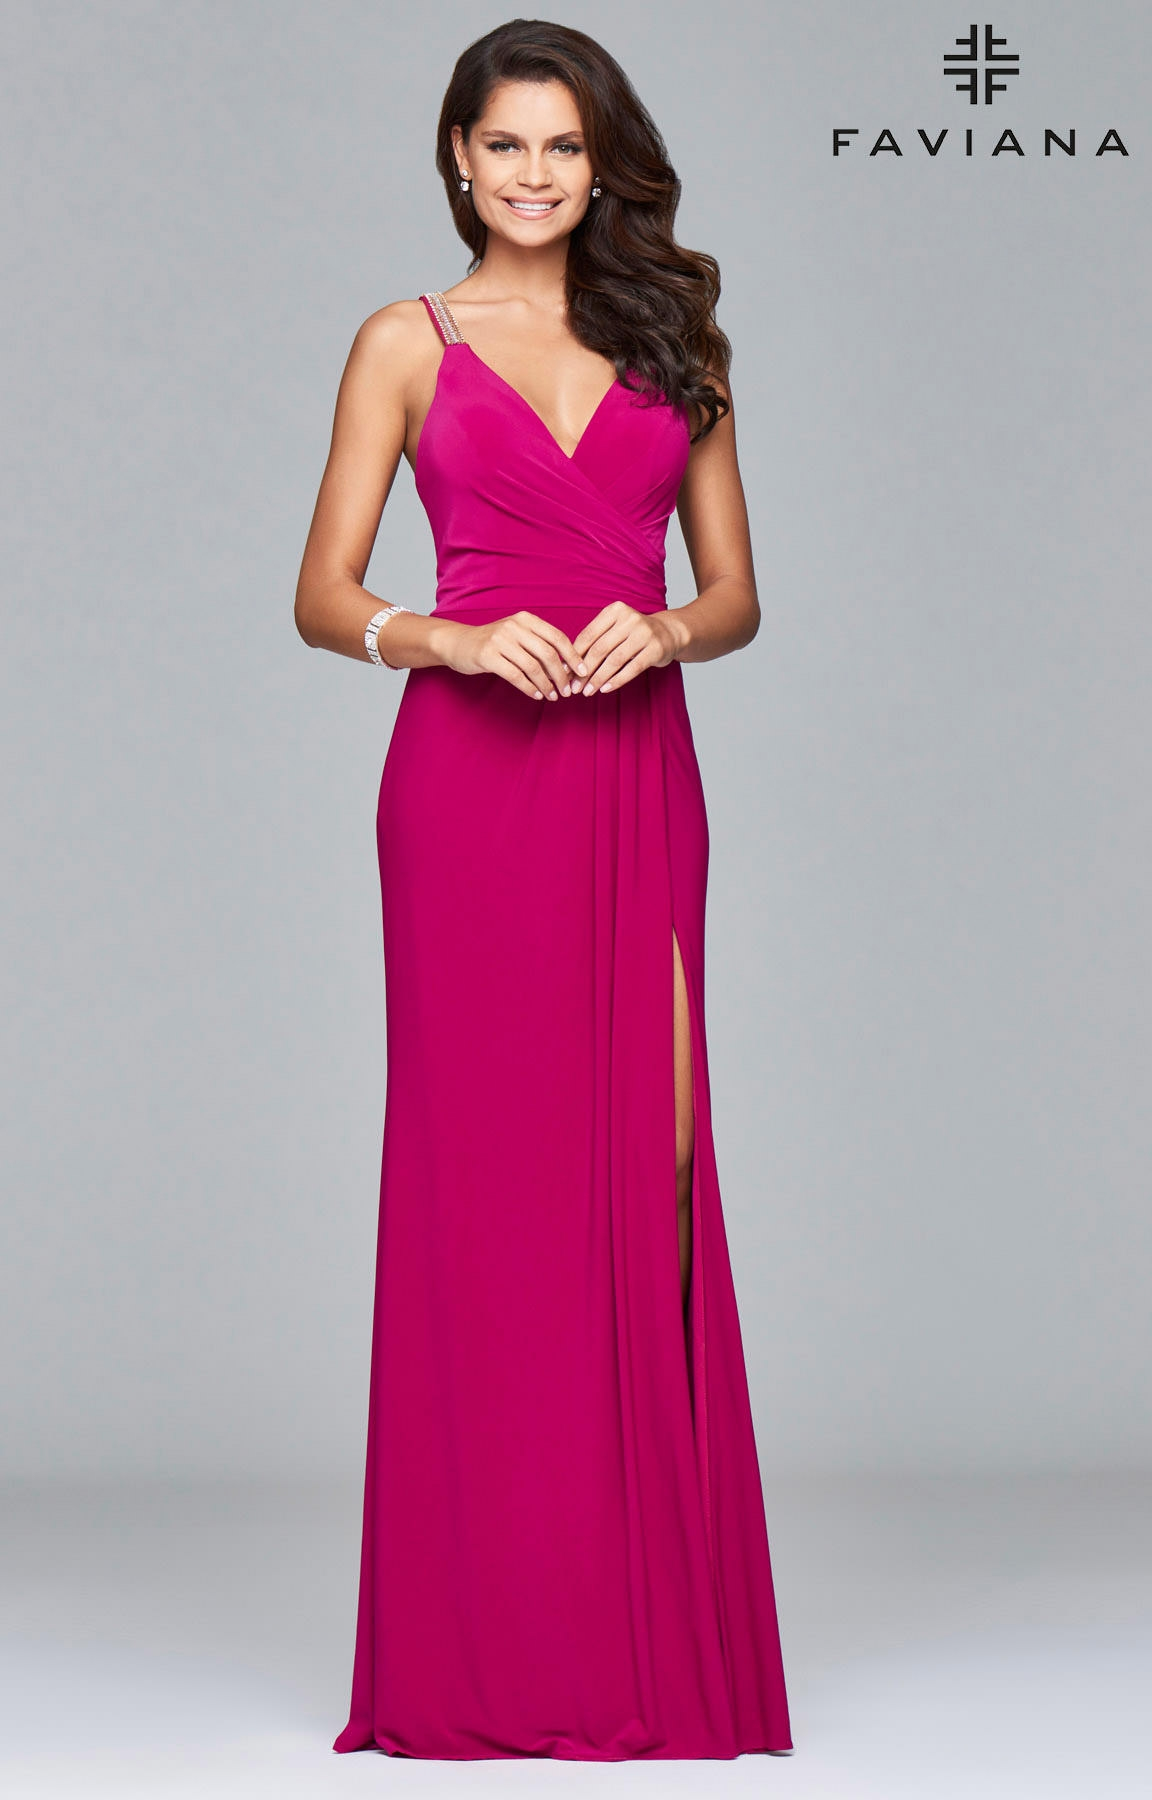 Faviana 7911 - Jersey Mesh with Ruching and Beaded Straps Prom Dress